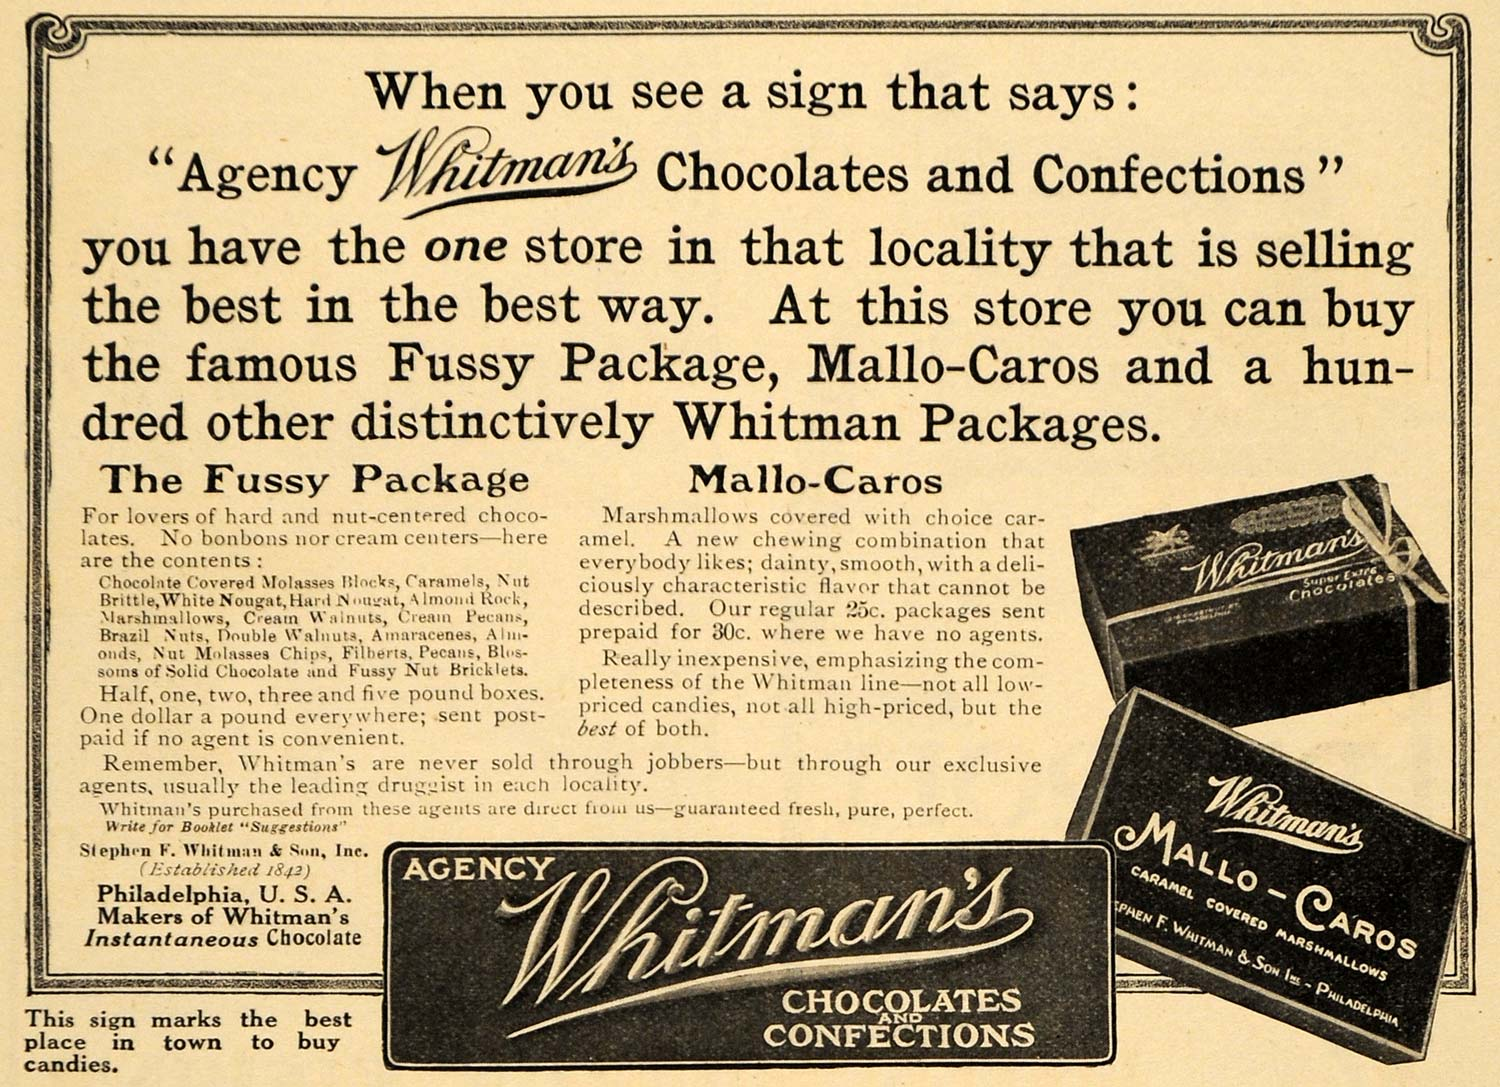 1910 Ad Mallo-Caros Fussy Package Whitmans Chocolates - ORIGINAL ADVERTISING HM1